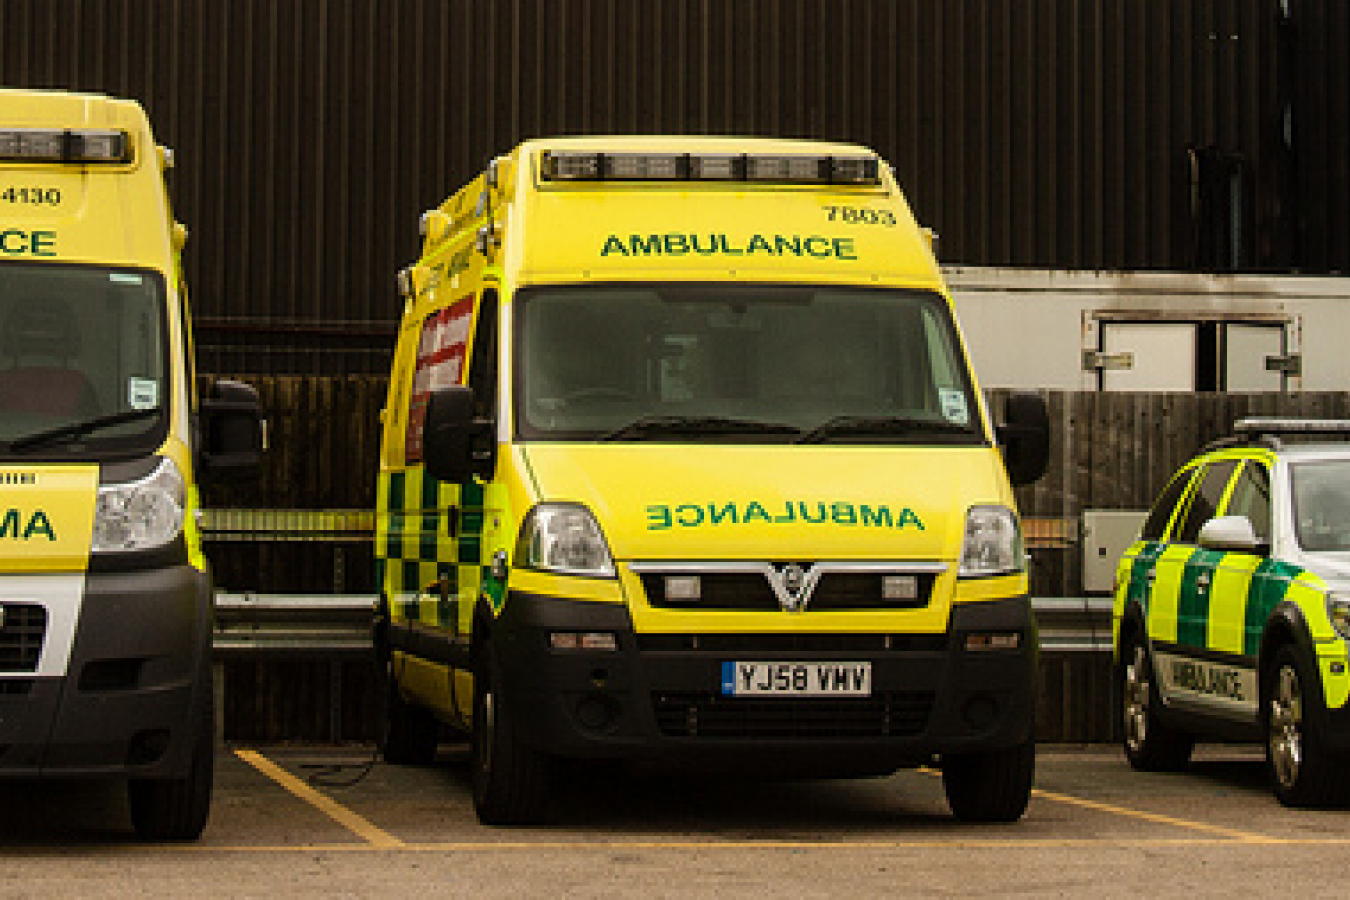 NHS Emergency Support